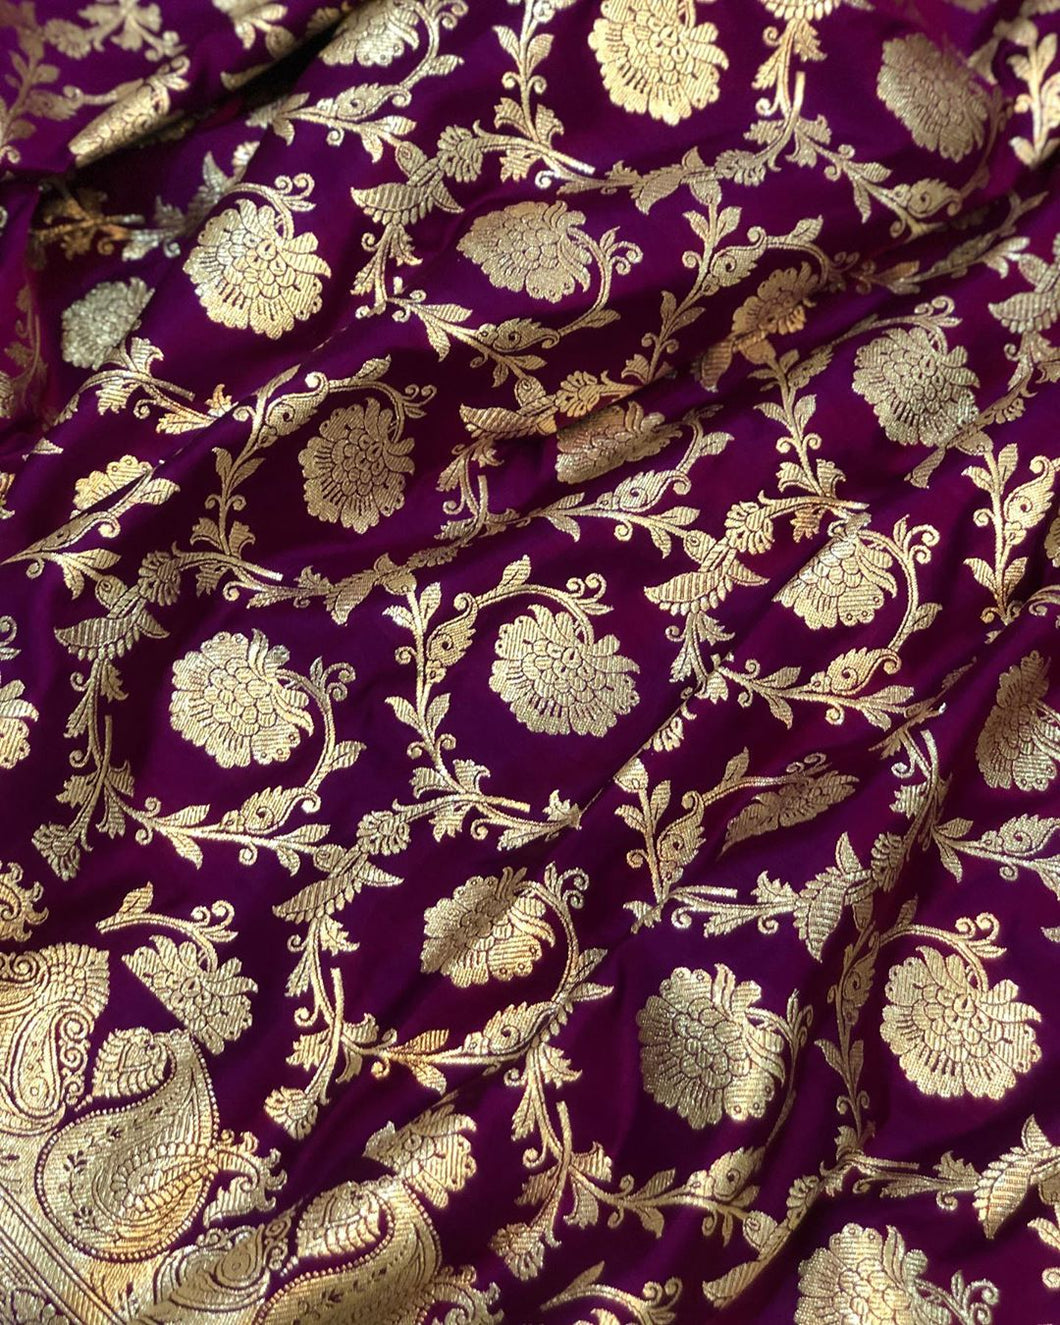 PURPLE BANARASI HANDLOOM SATIN SILK SAREE(ALLOVER JAAL WORK)